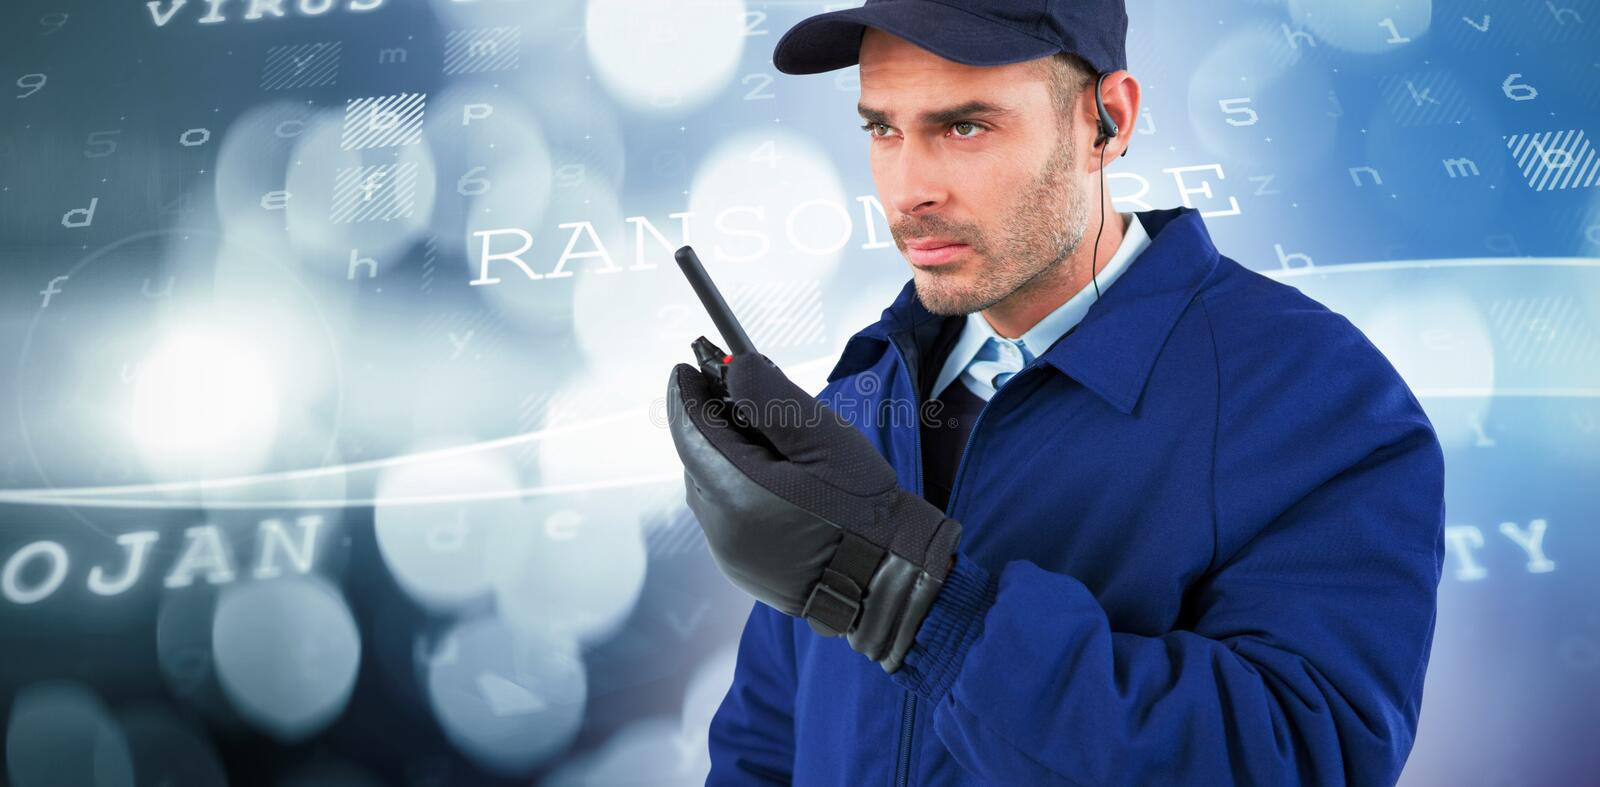 Composite image of focused security officer talking on walkie talkie. Focused security officer talking on walkie talkie against virus background stock image